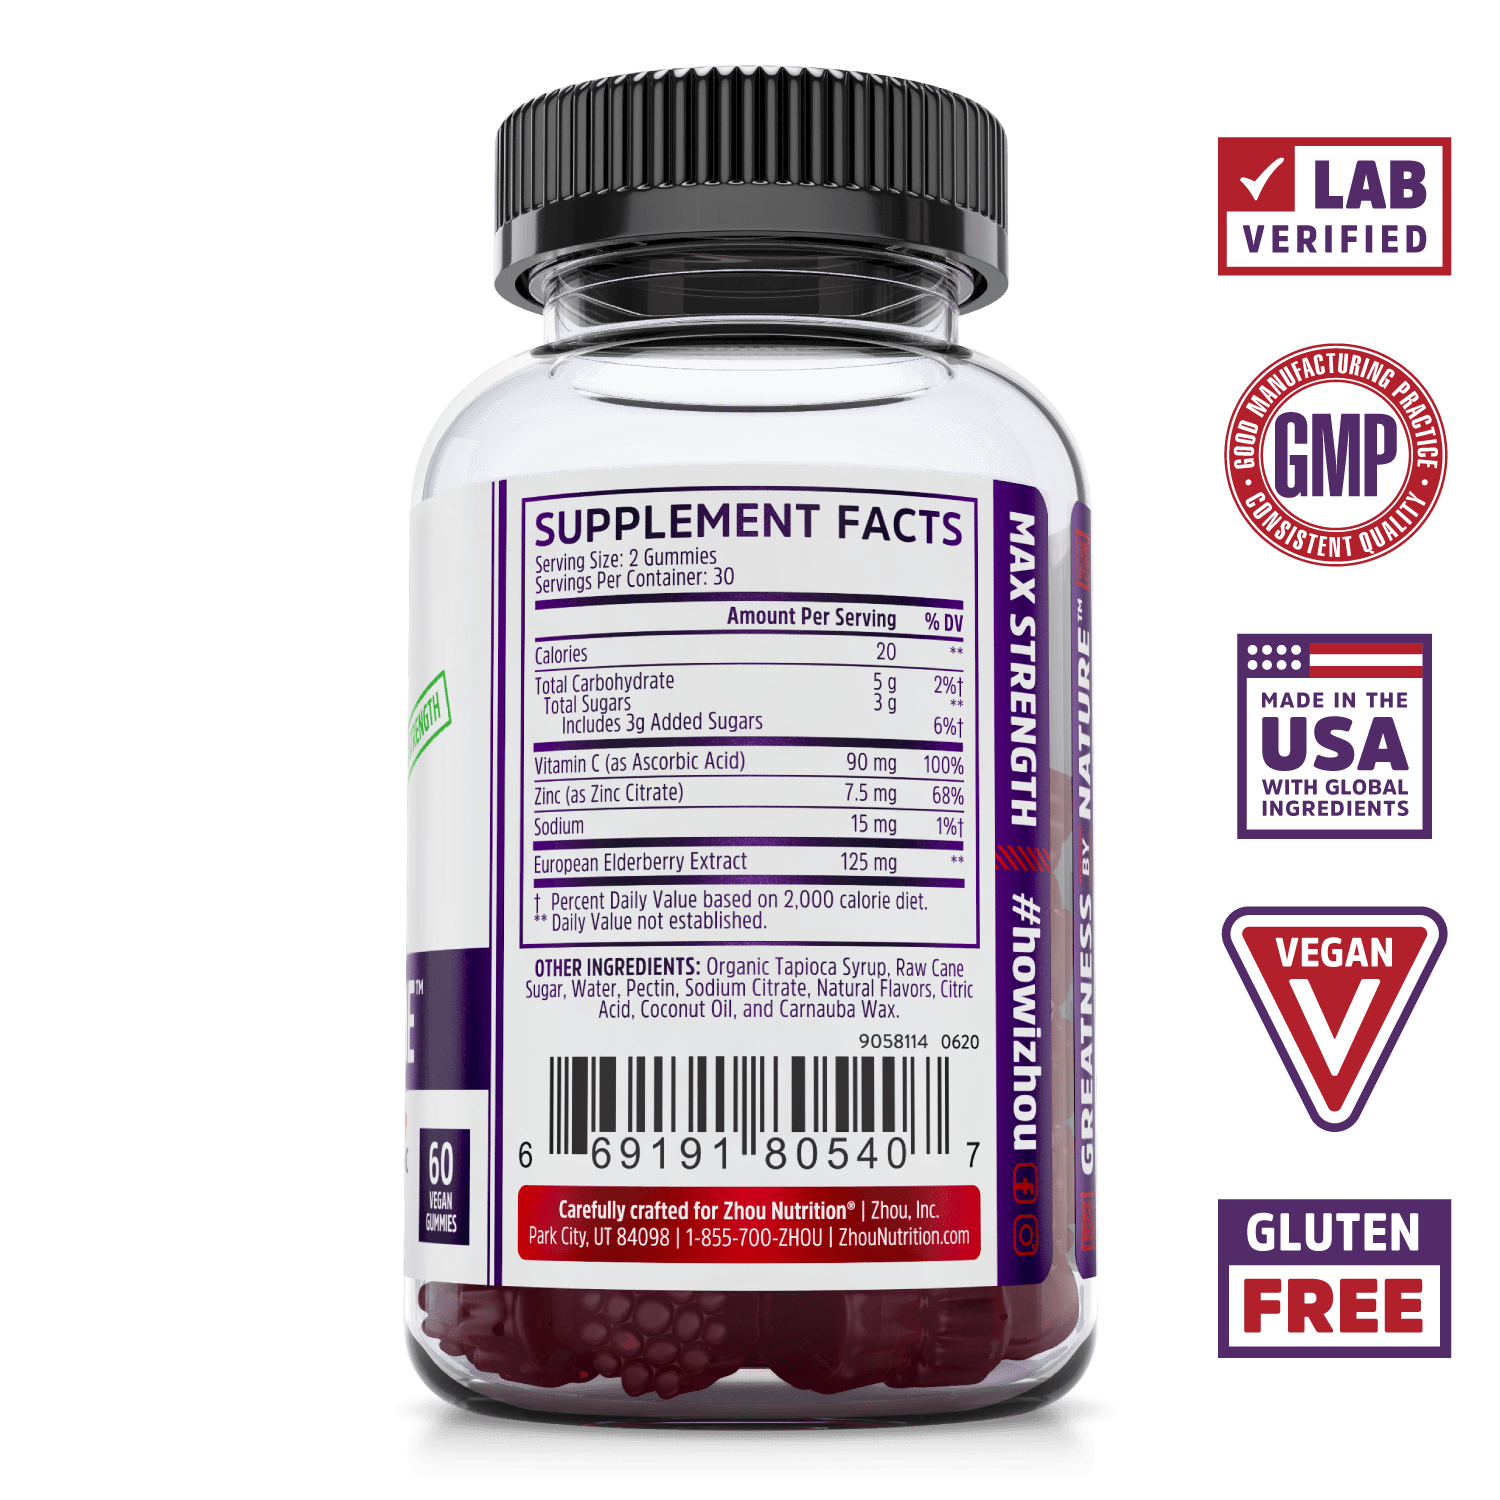 Elder-Mune Elderberry Supplement Gummies from Zhou Nutrition. Bottle side. Lab verified, good manufacturing practices, made in the USA with global ingredients, vegan, gluten free.